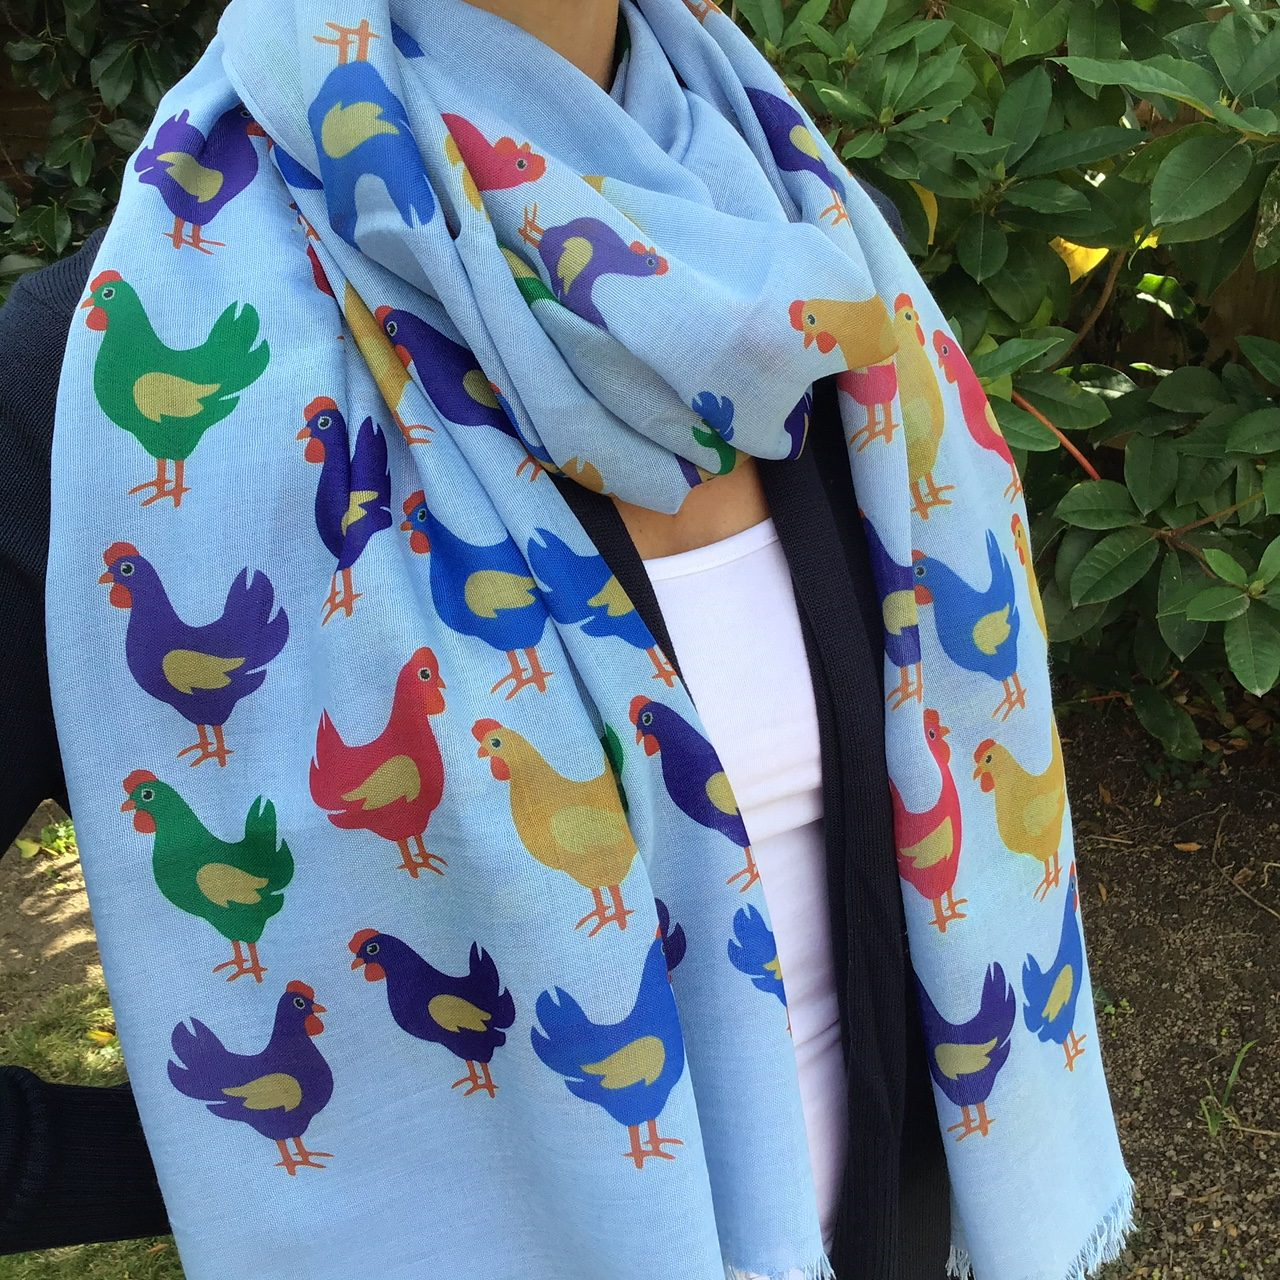 Chicken Scarf - Cute Chicken Print Blue Scarf - Hand Printed in the UK - FREE personalisation